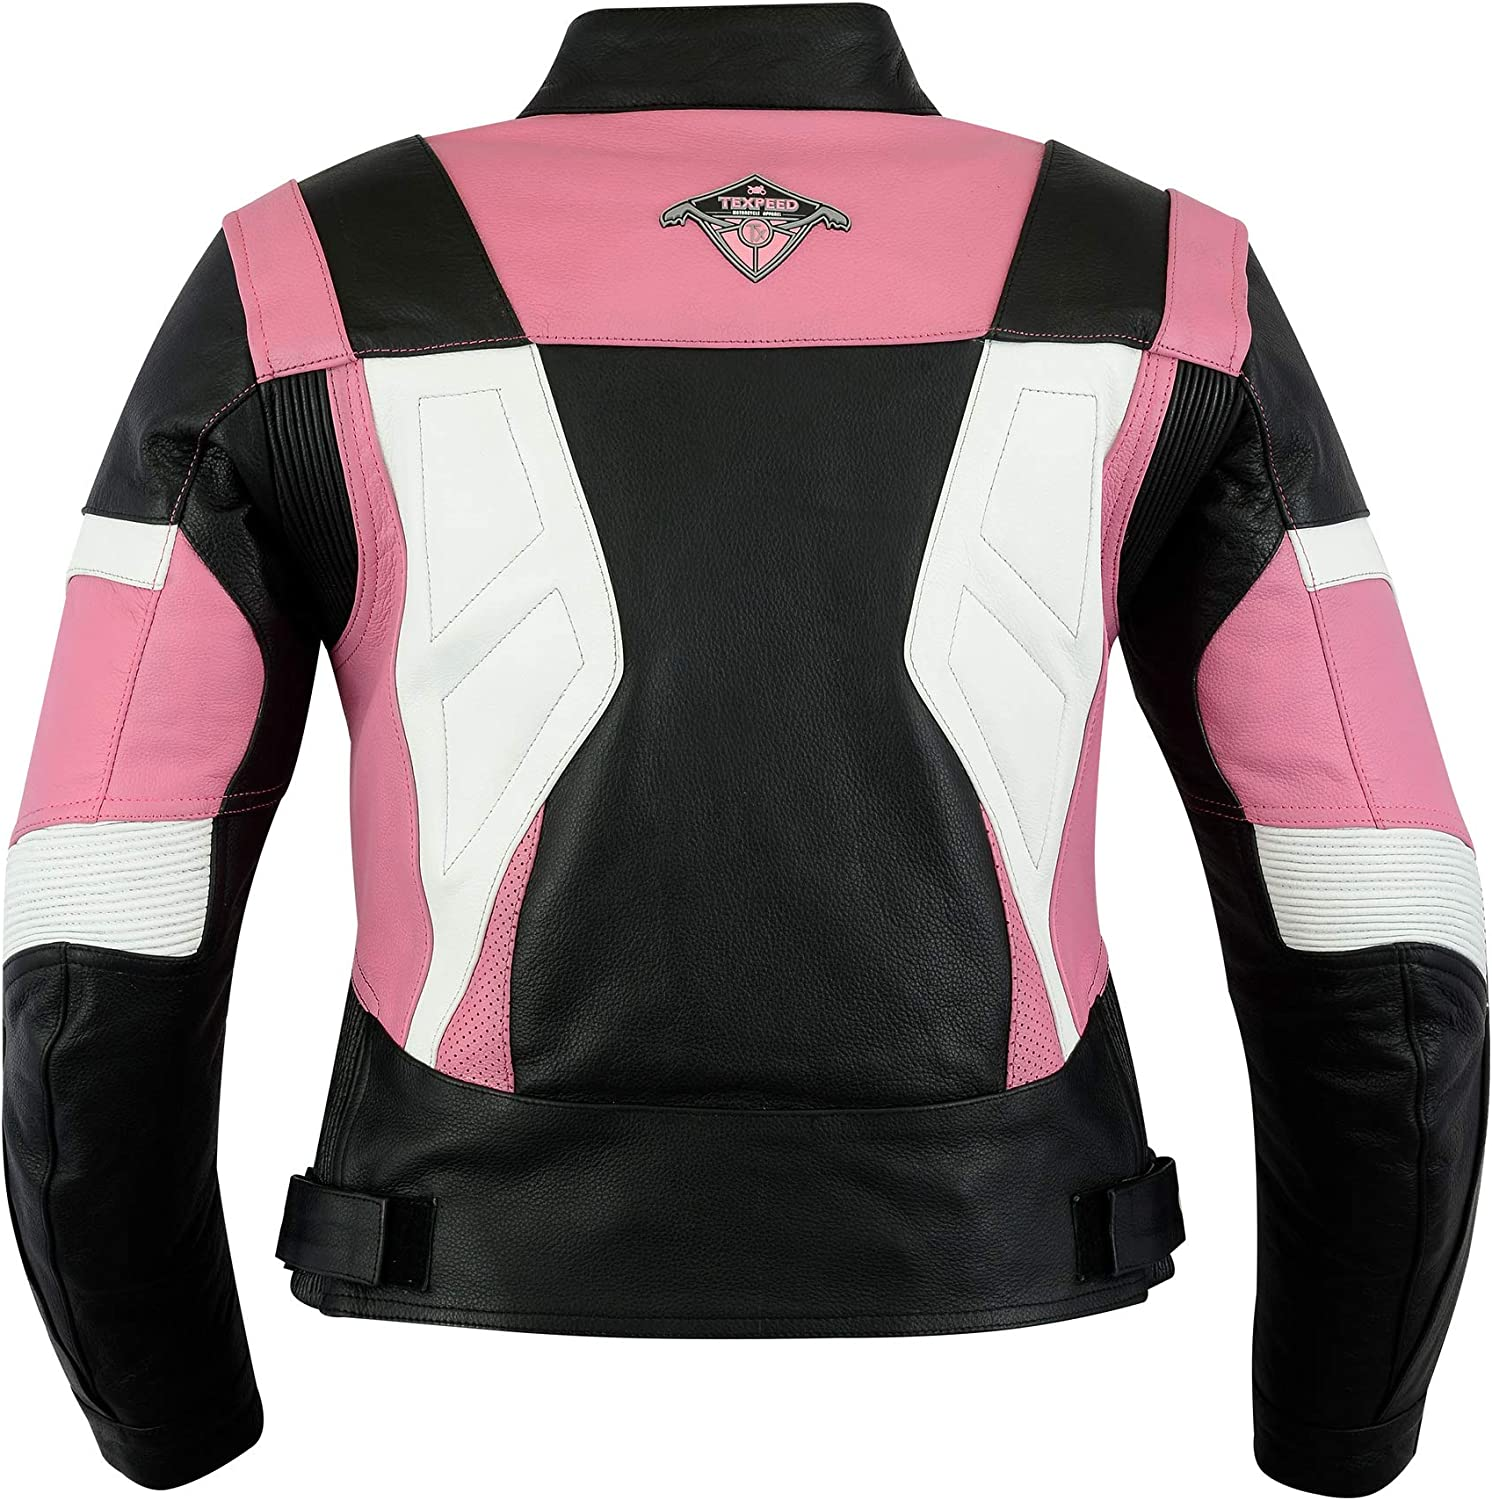 All Sizes Ladies Texpeed Pink /& Black Armoured Leather Motorcycle//Motorbike Jacket